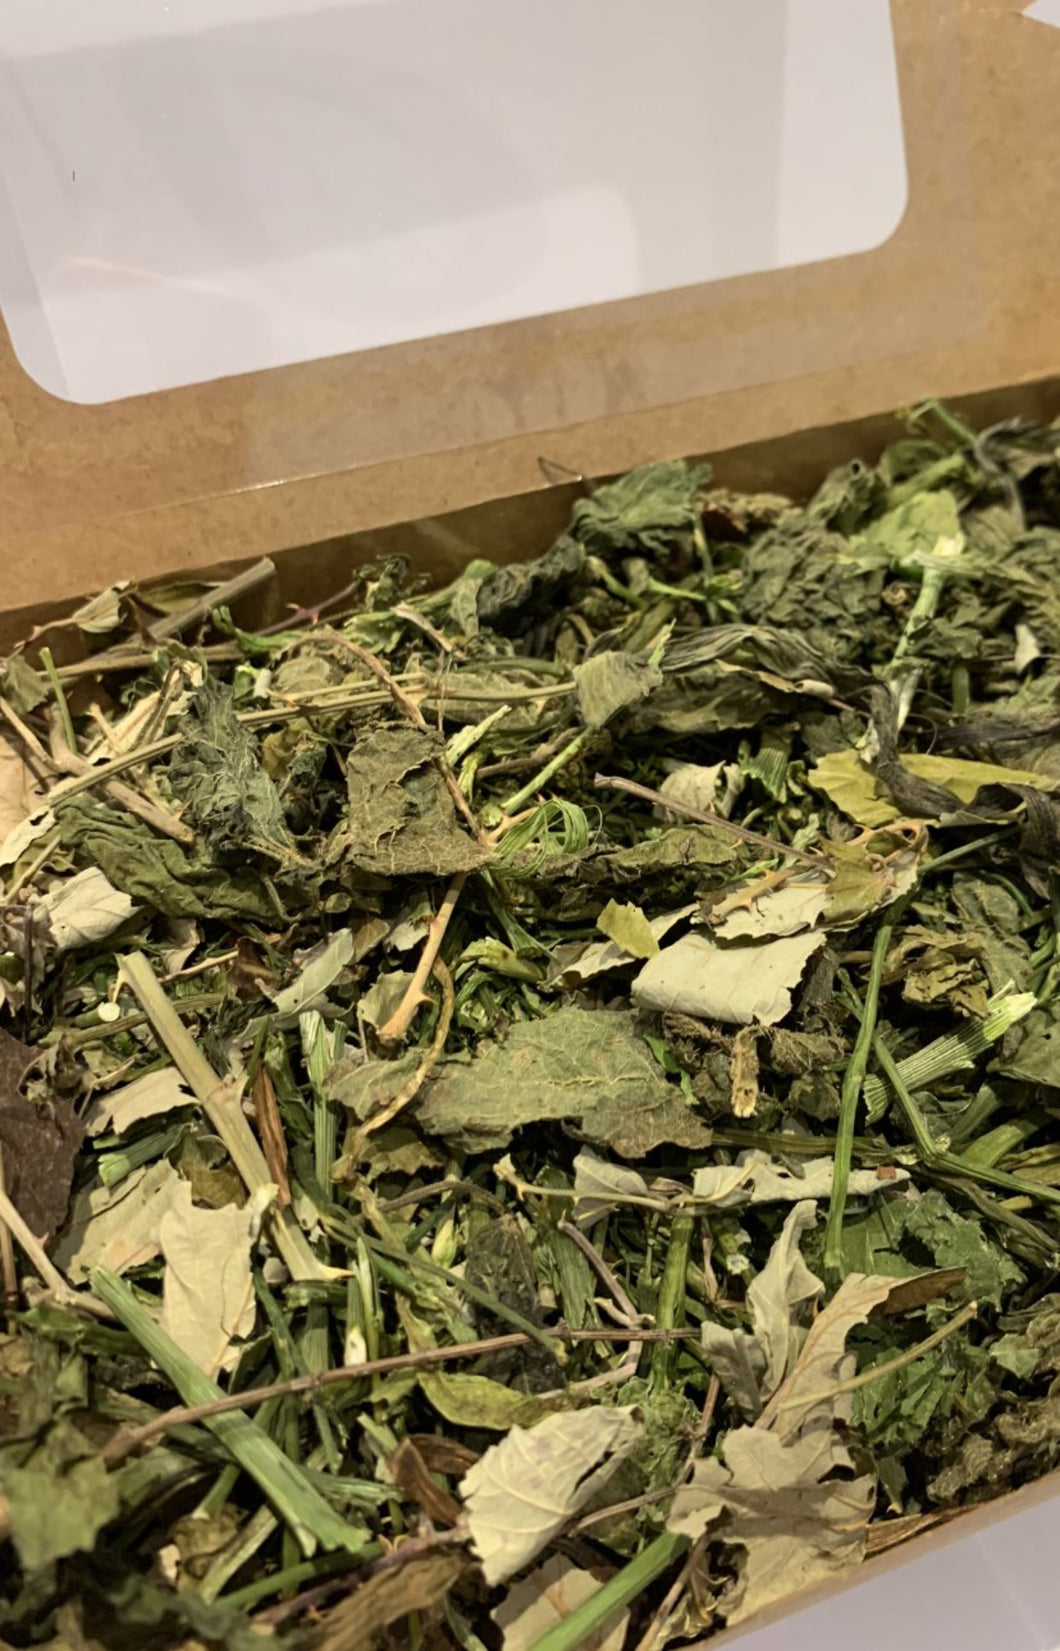 Box filled with healthy forage for rabbits